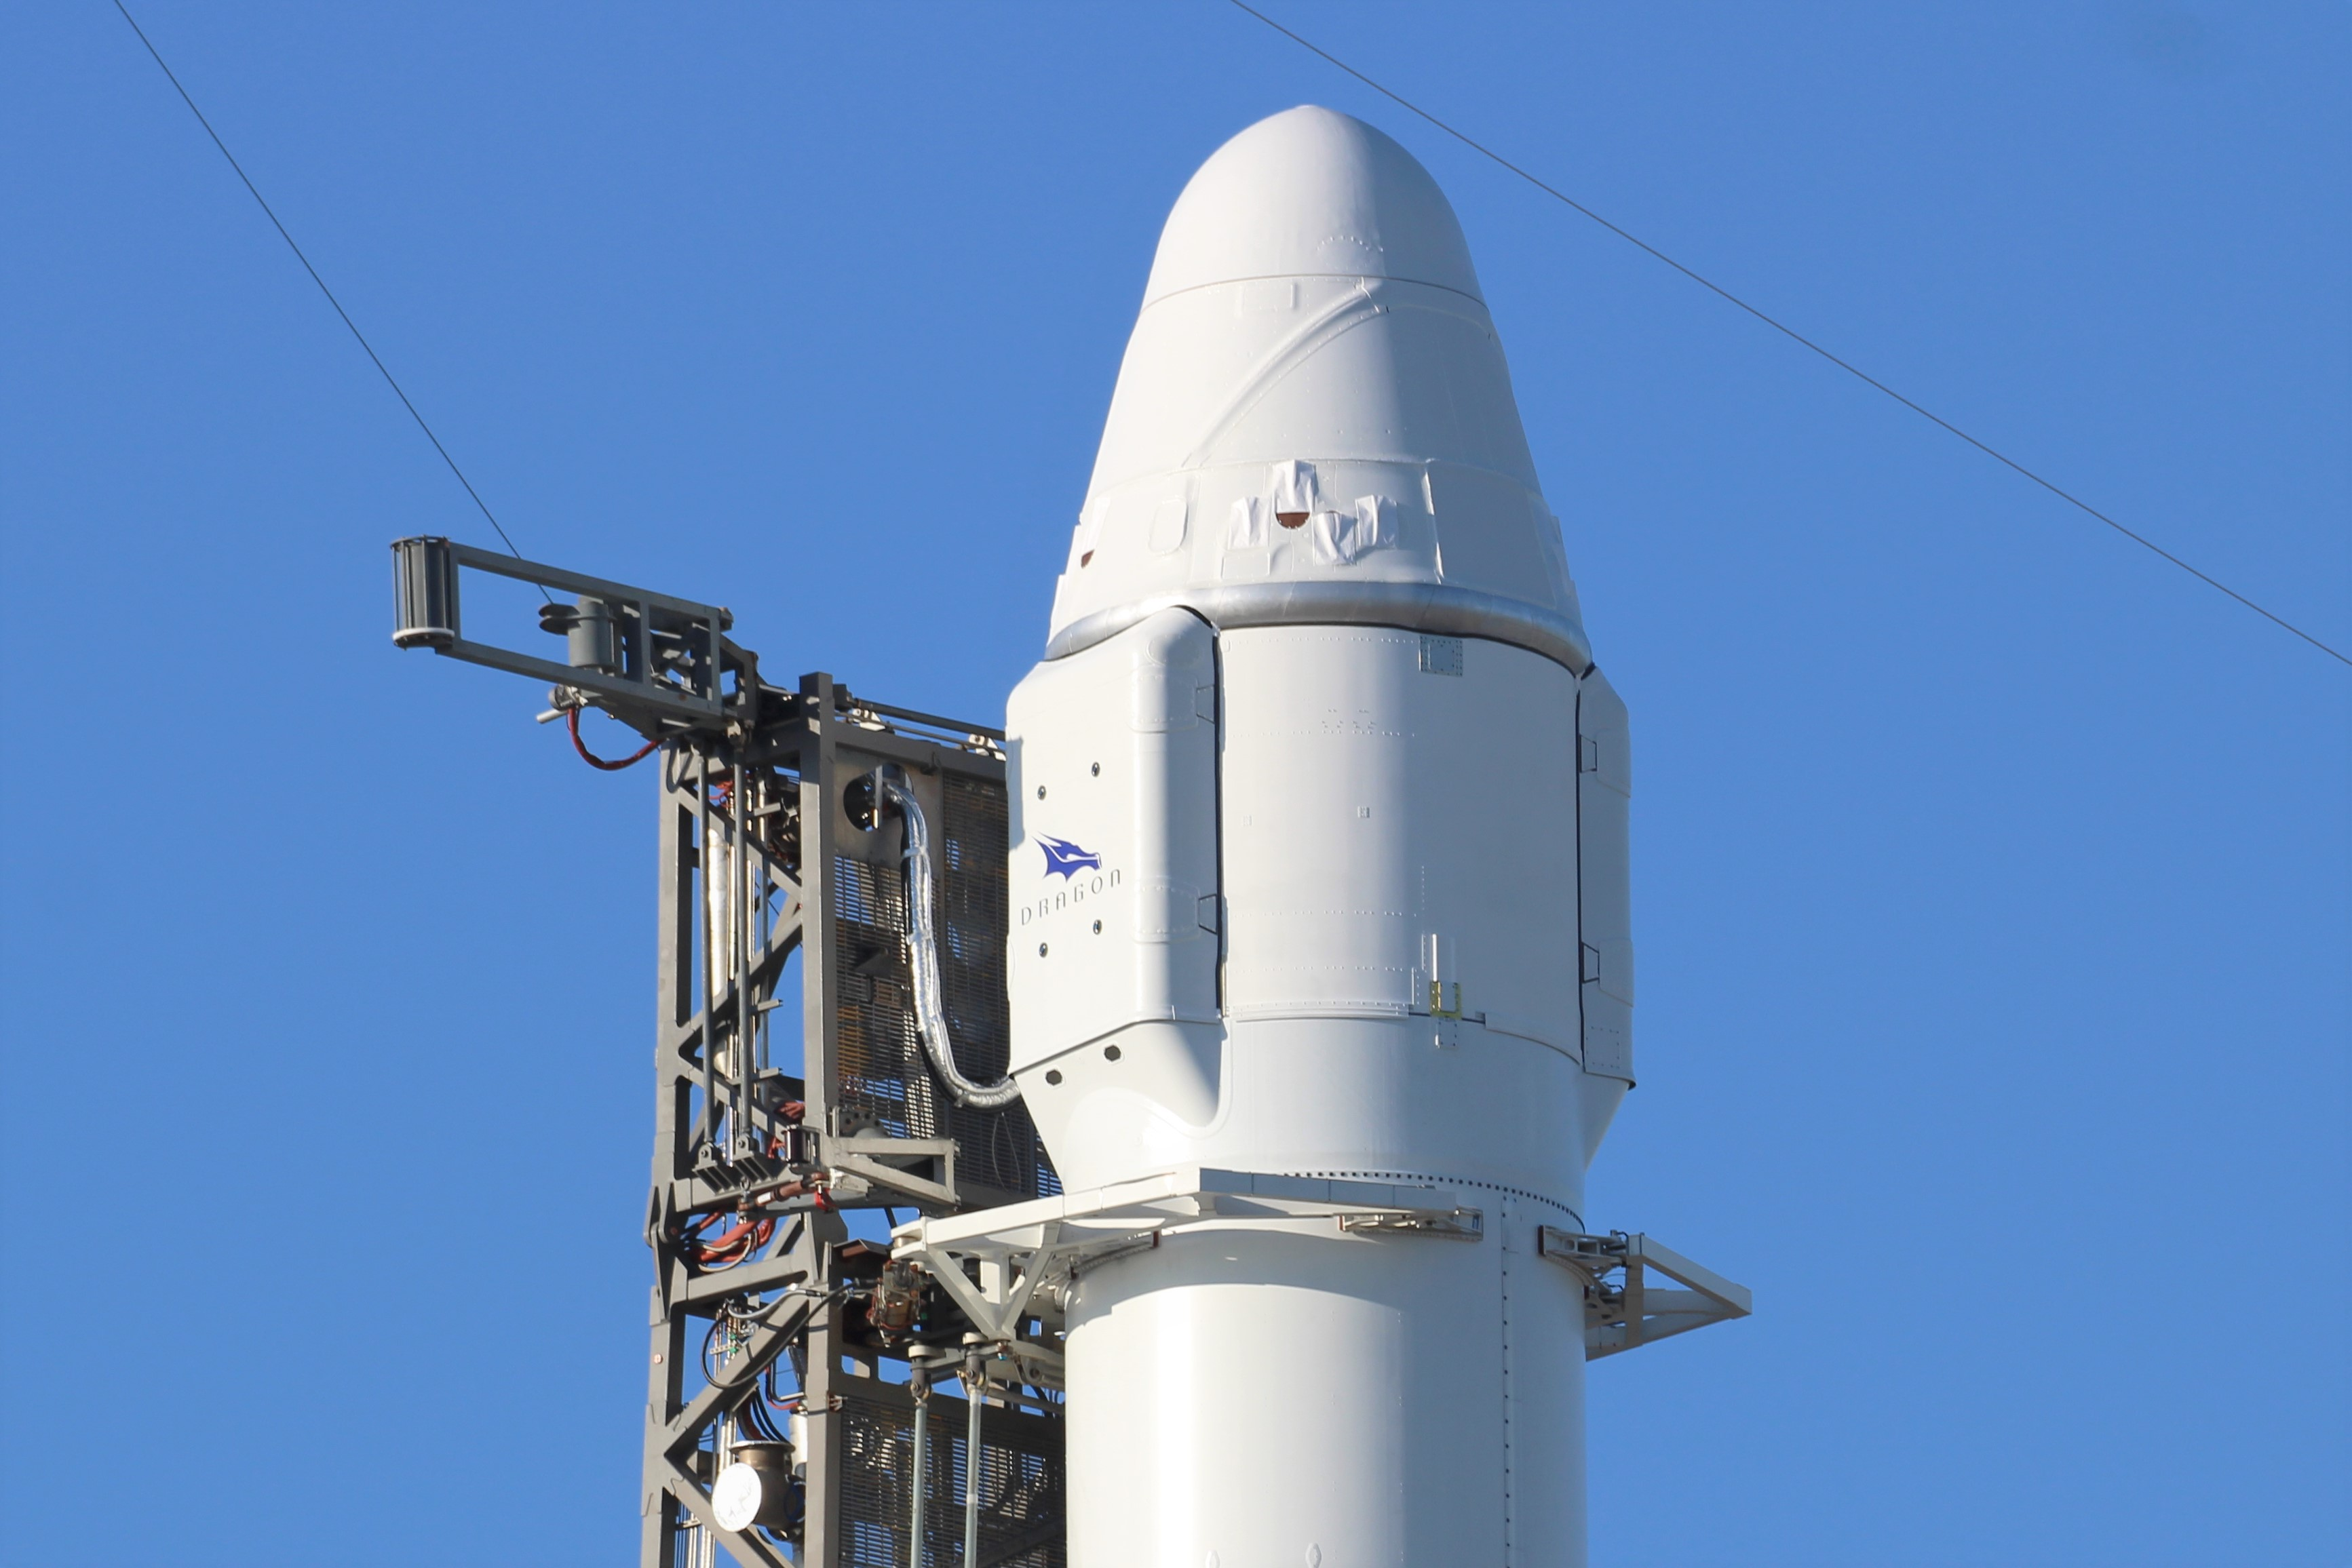 SpaceX Dragon Poised for Lunchtime Liftoff on Resupply Mission for NASA to Space Station